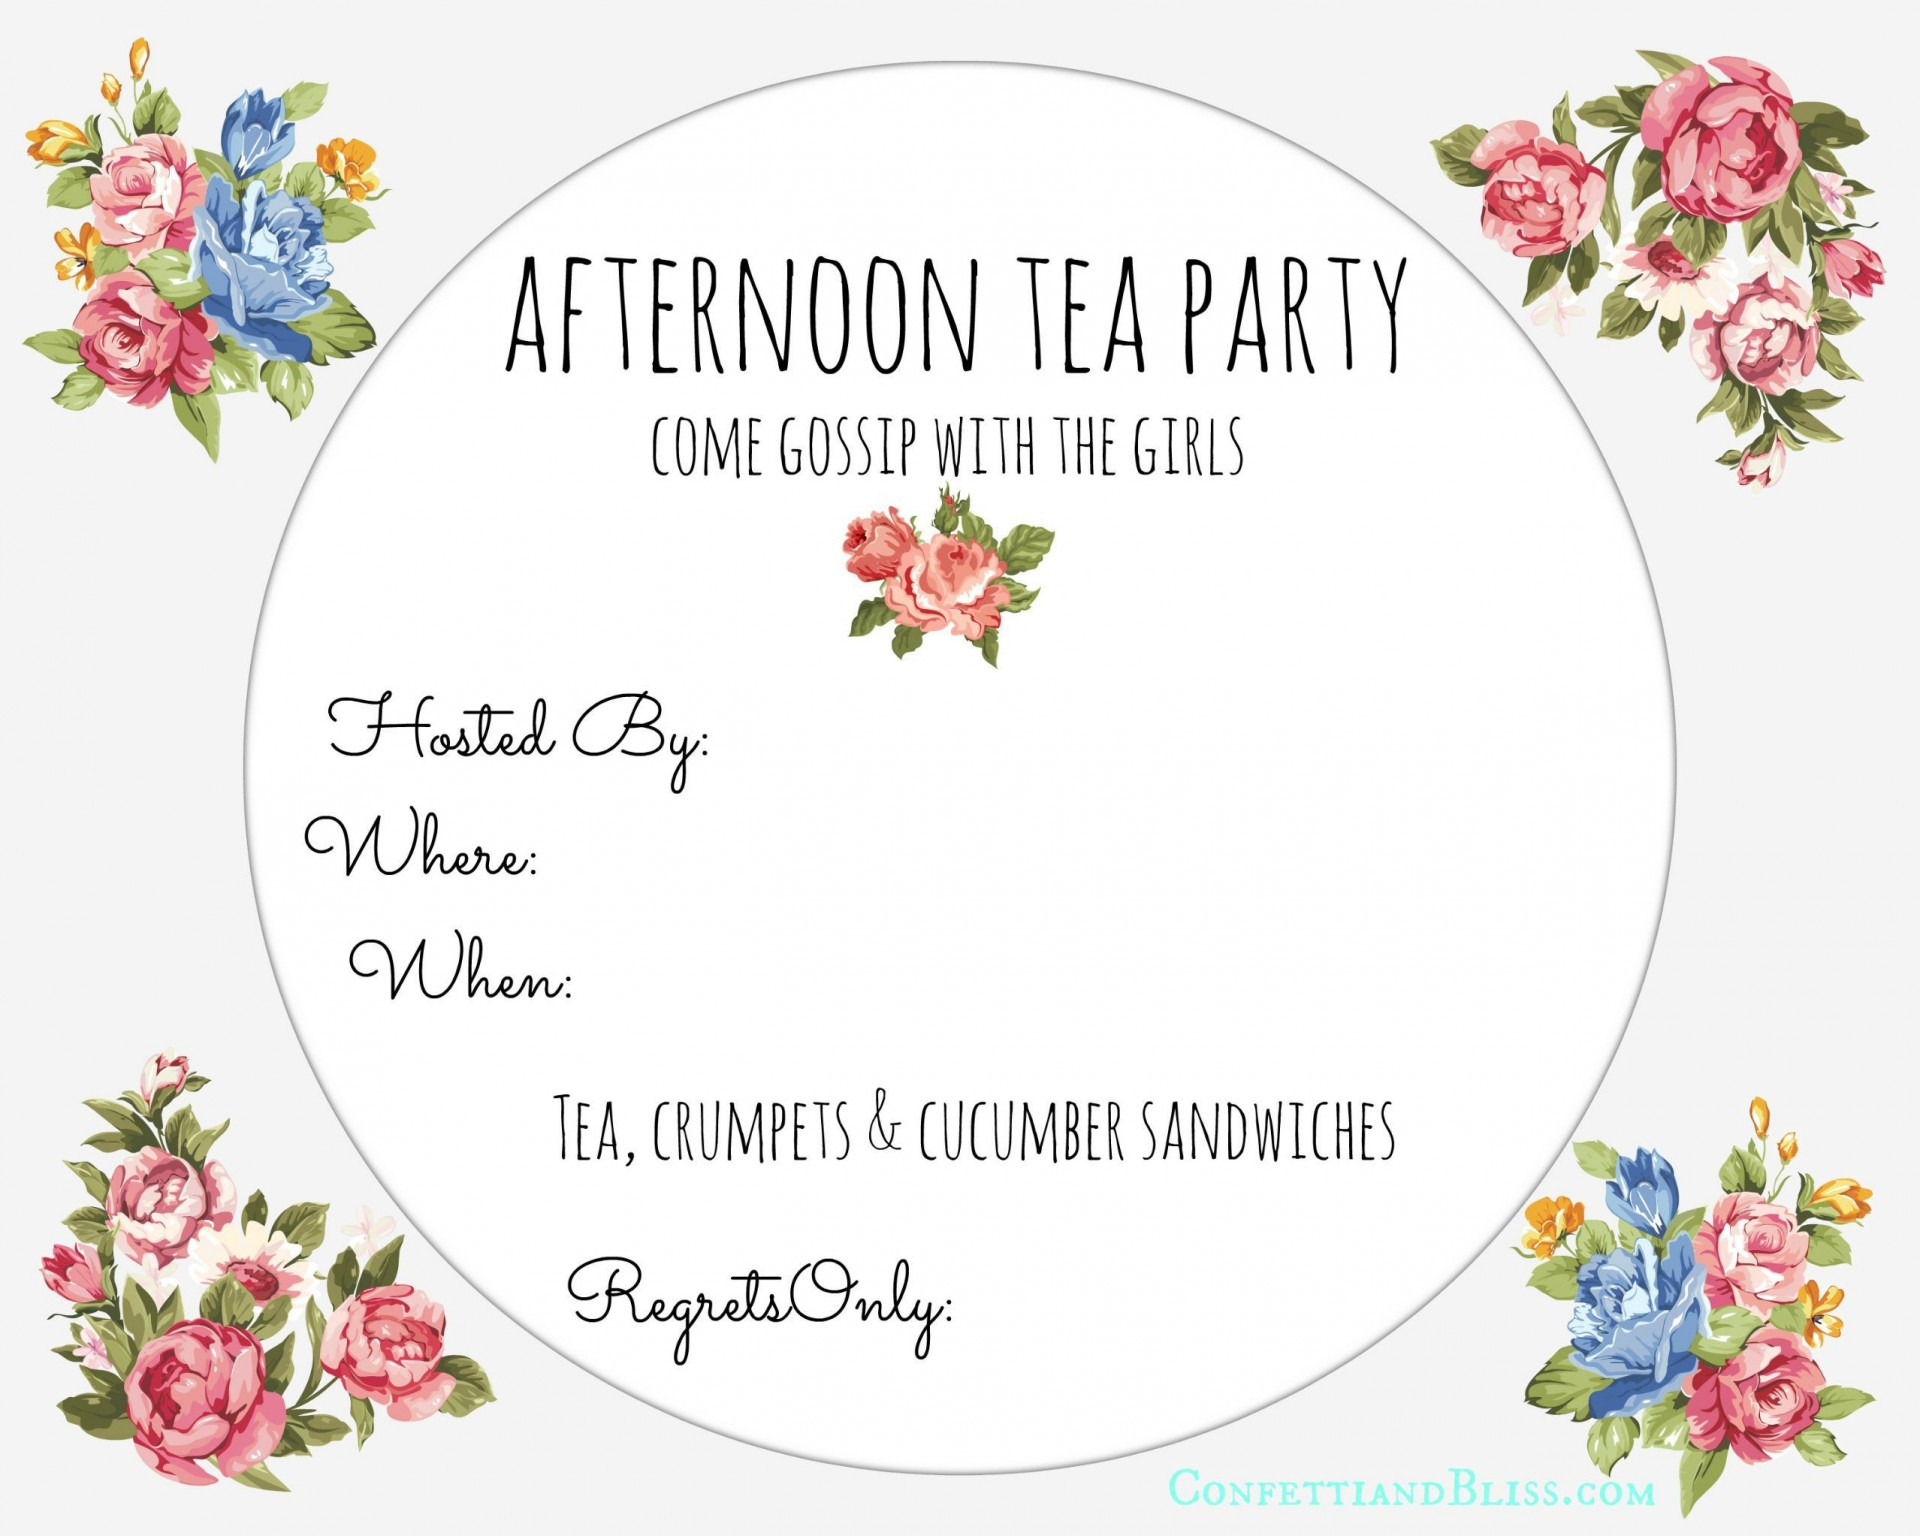 001 Magnificent Tea Party Invitation Template Free Example  Vintage Princes Printable1920